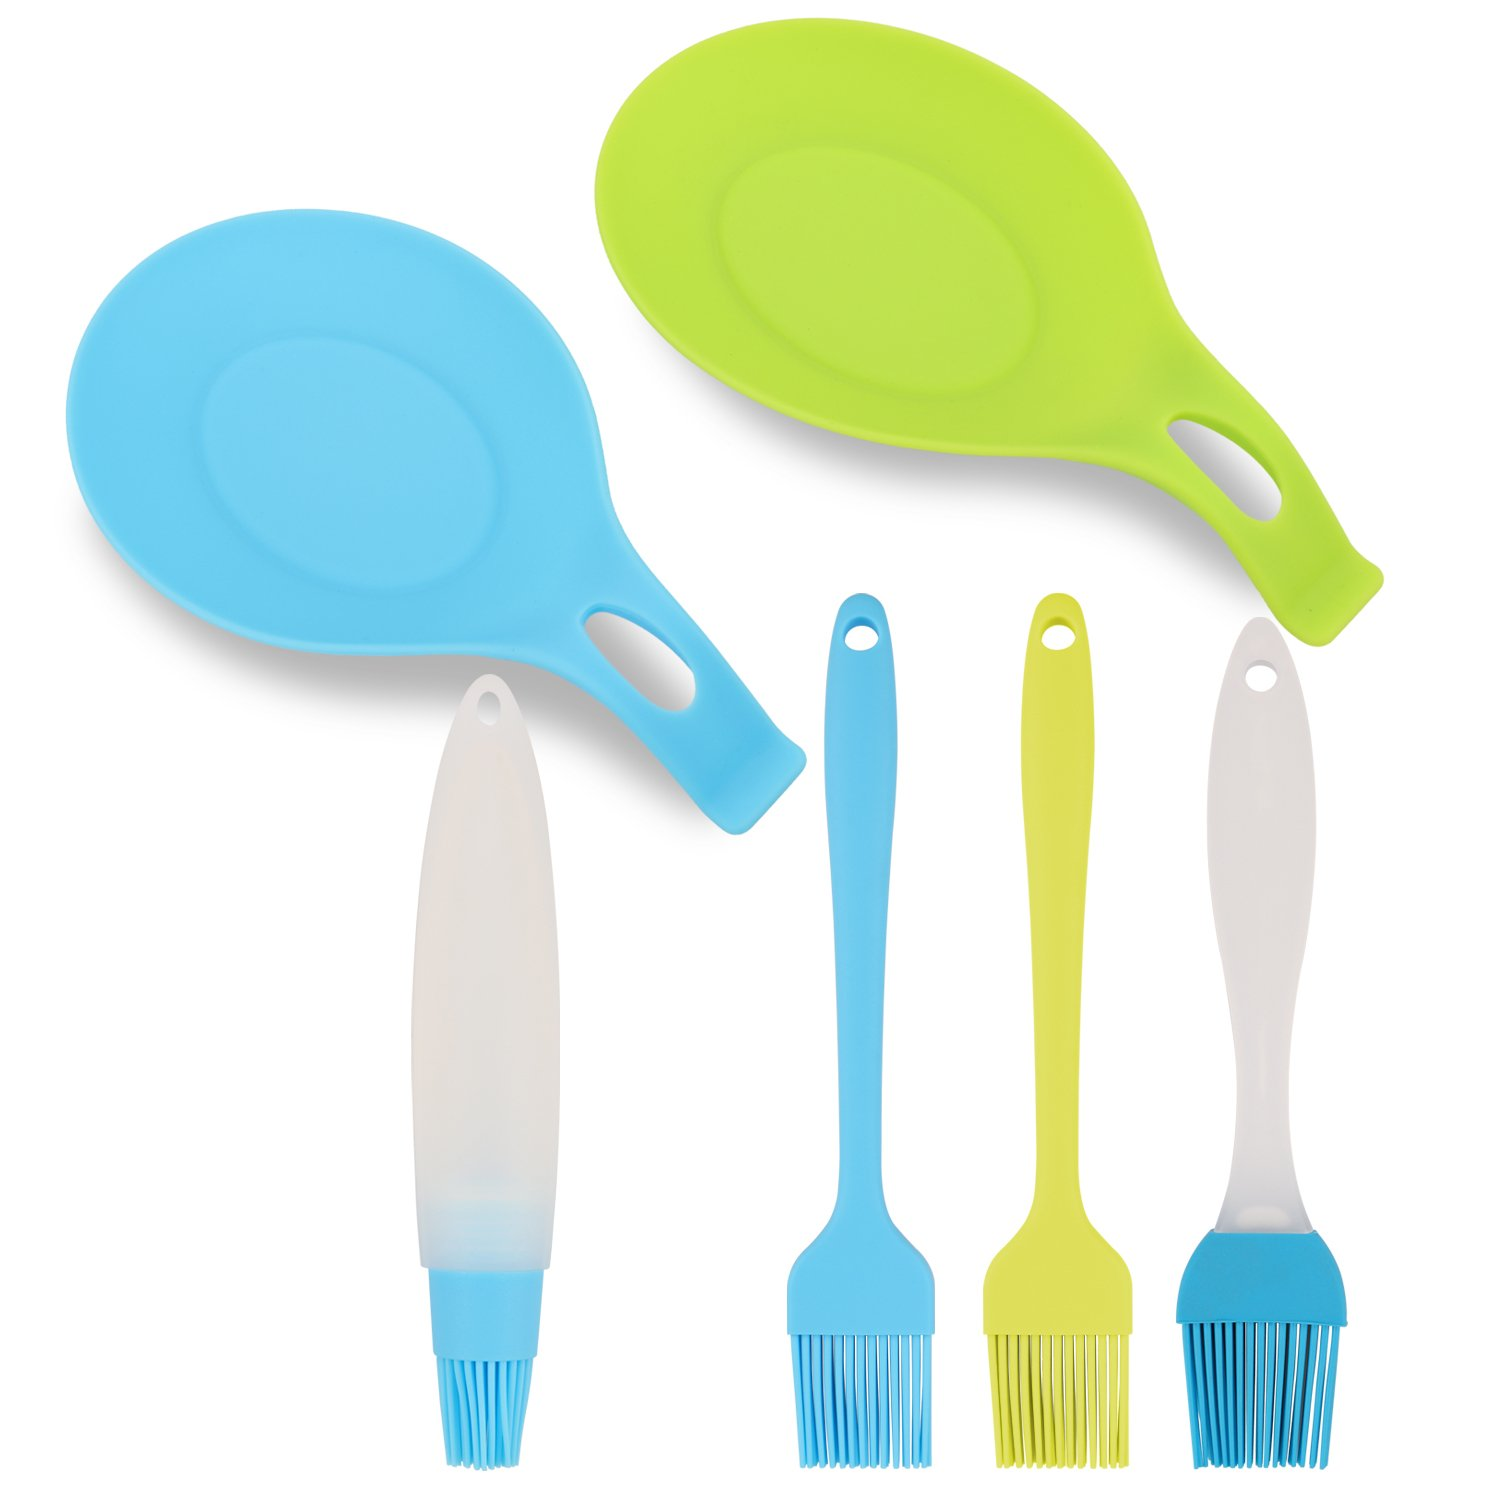 6 Pieces Silicone Basting Pastry Brushes with Silicone Spoon Rest ...